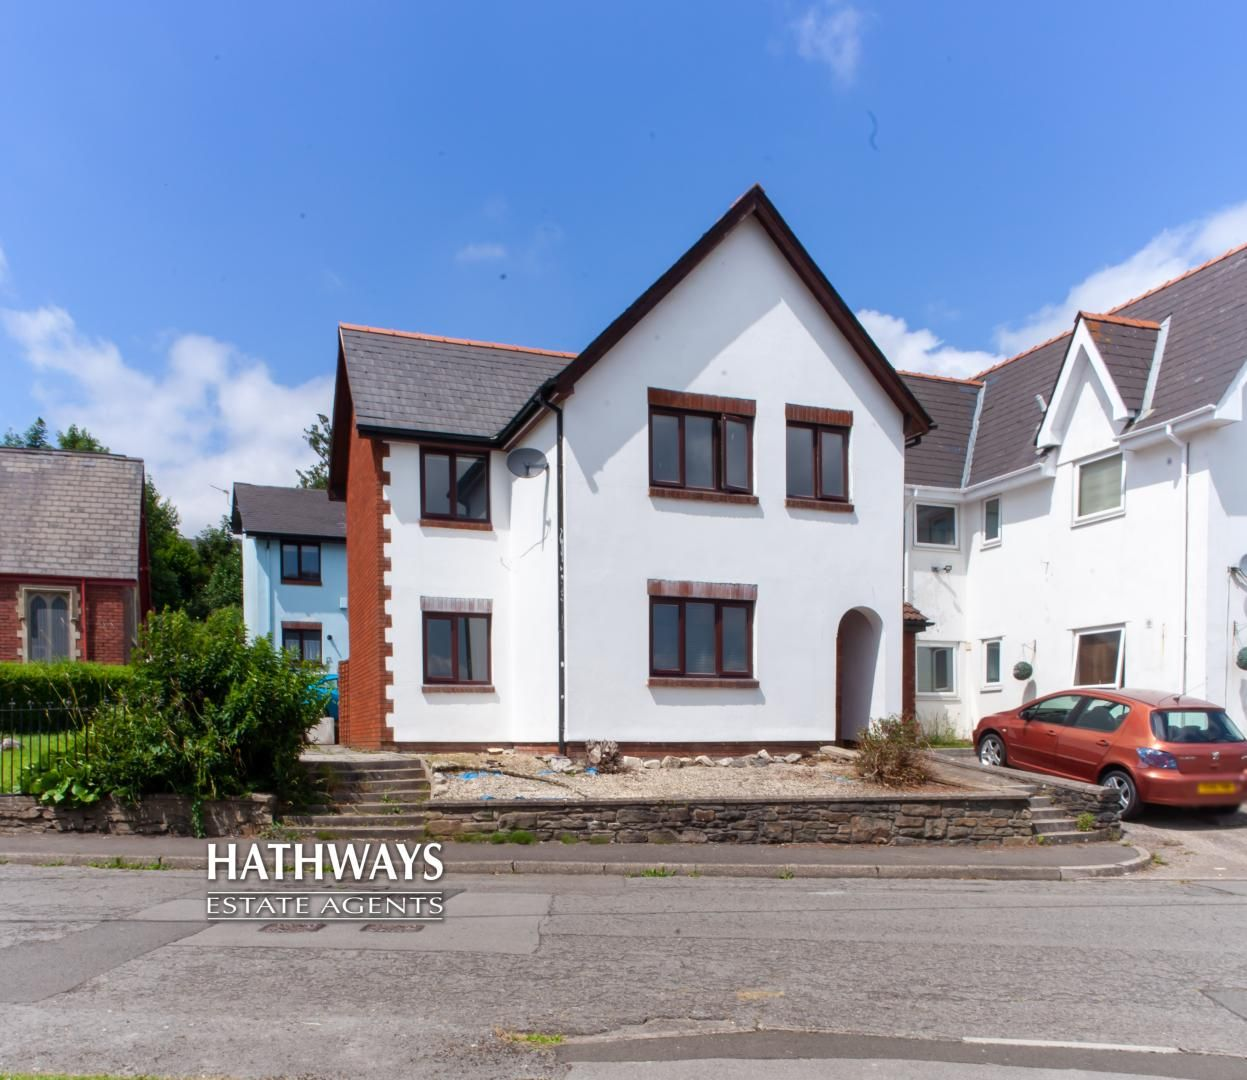 3 bed house for sale in St Oswalds Close, NP4